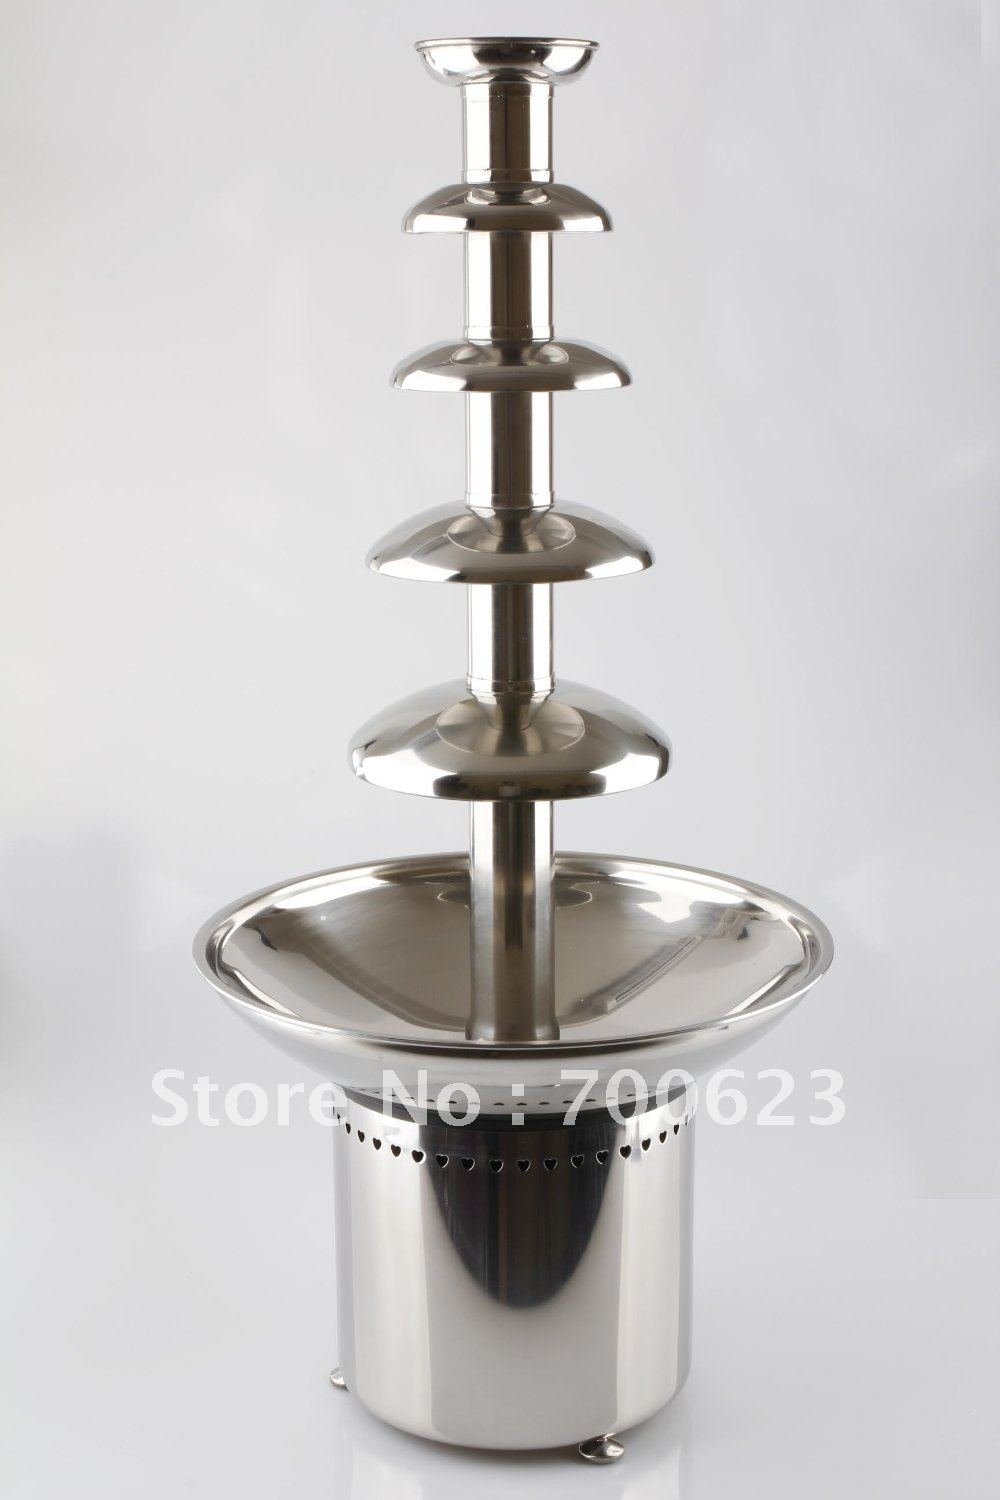 "New 304 Stainless Steel,31.5"" Commercial chocolate fountains,Free Shipping (ANT-8086)"